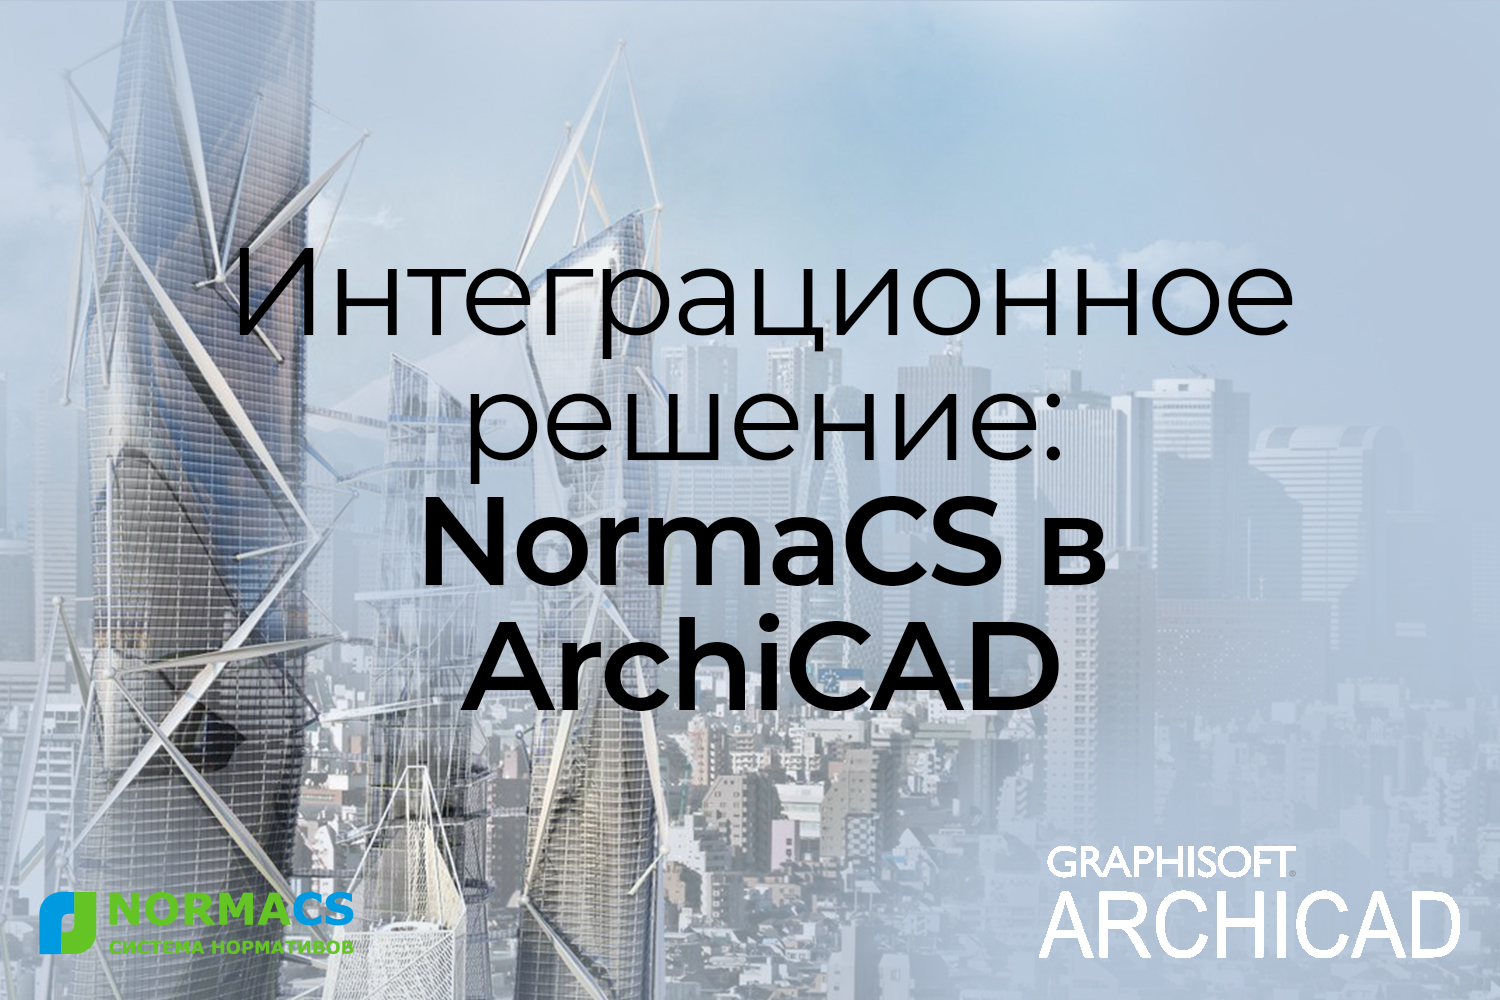 NormaCS v ArchiCAD